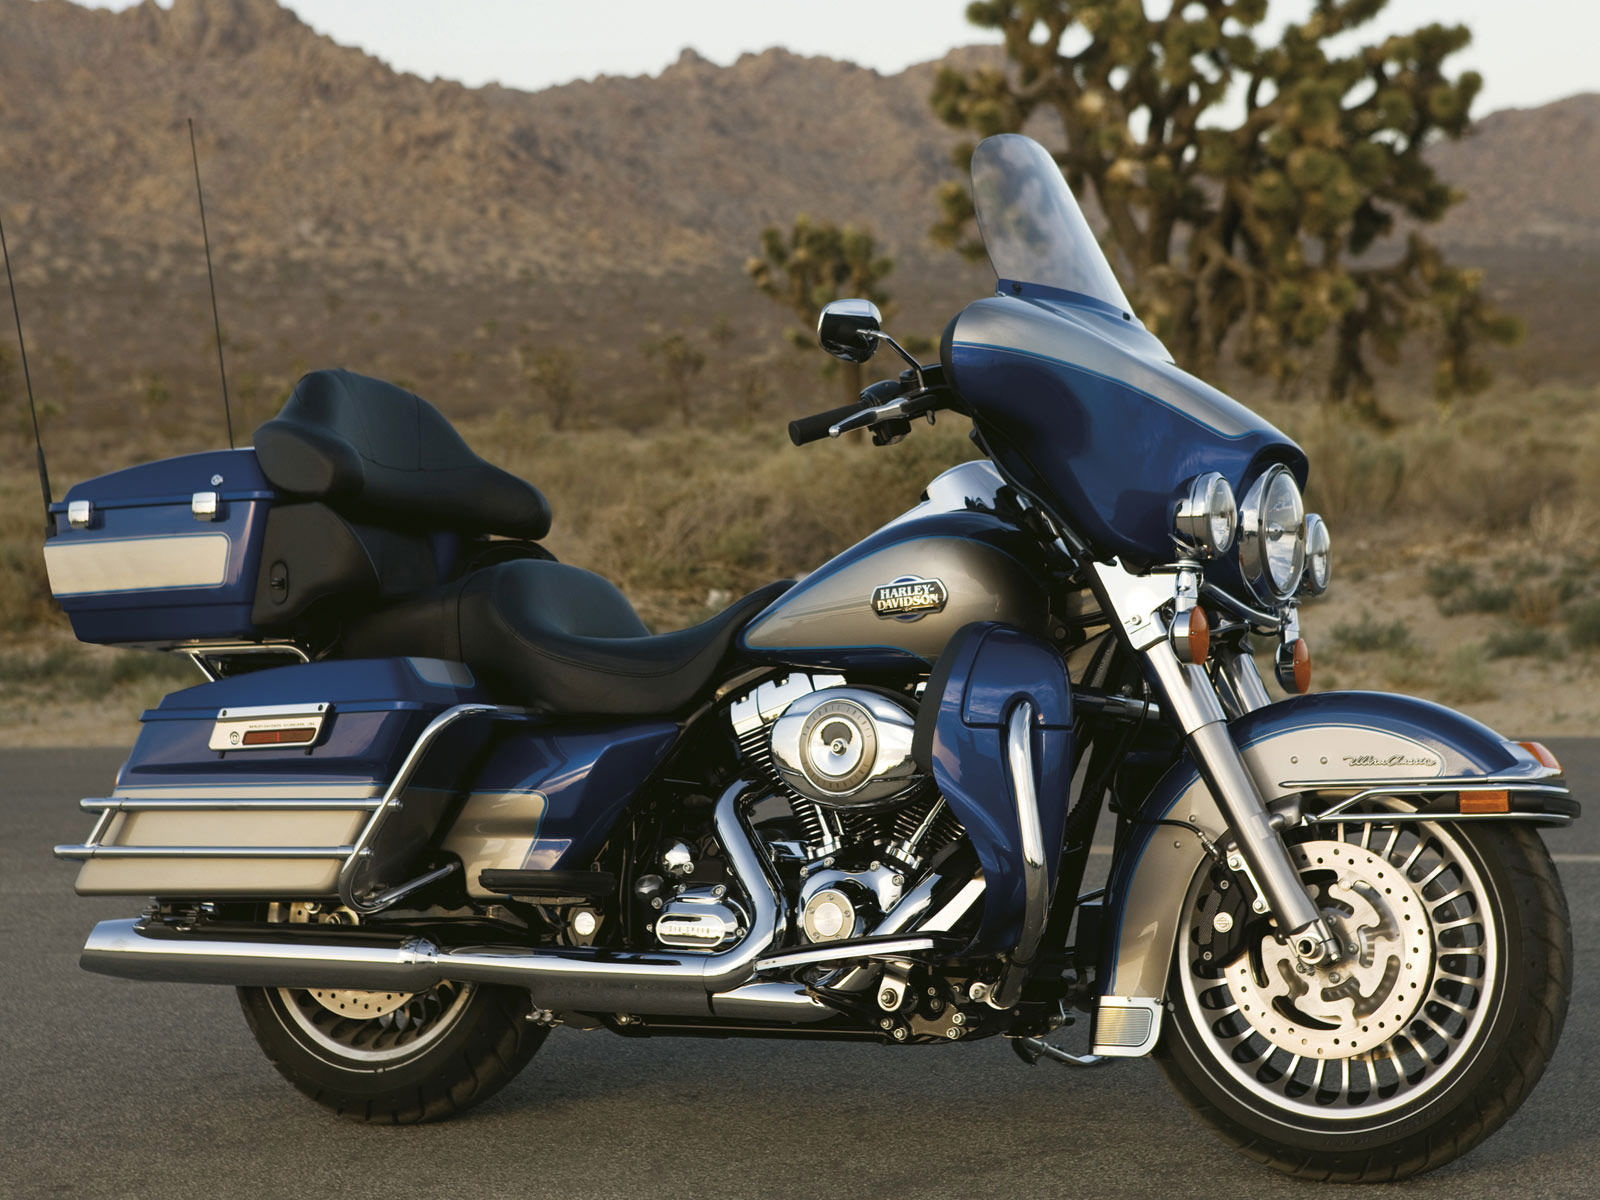 New Motorcycles for Sale Harley-Davidson Ultra Classic Electra Glide FLHTCU 2010